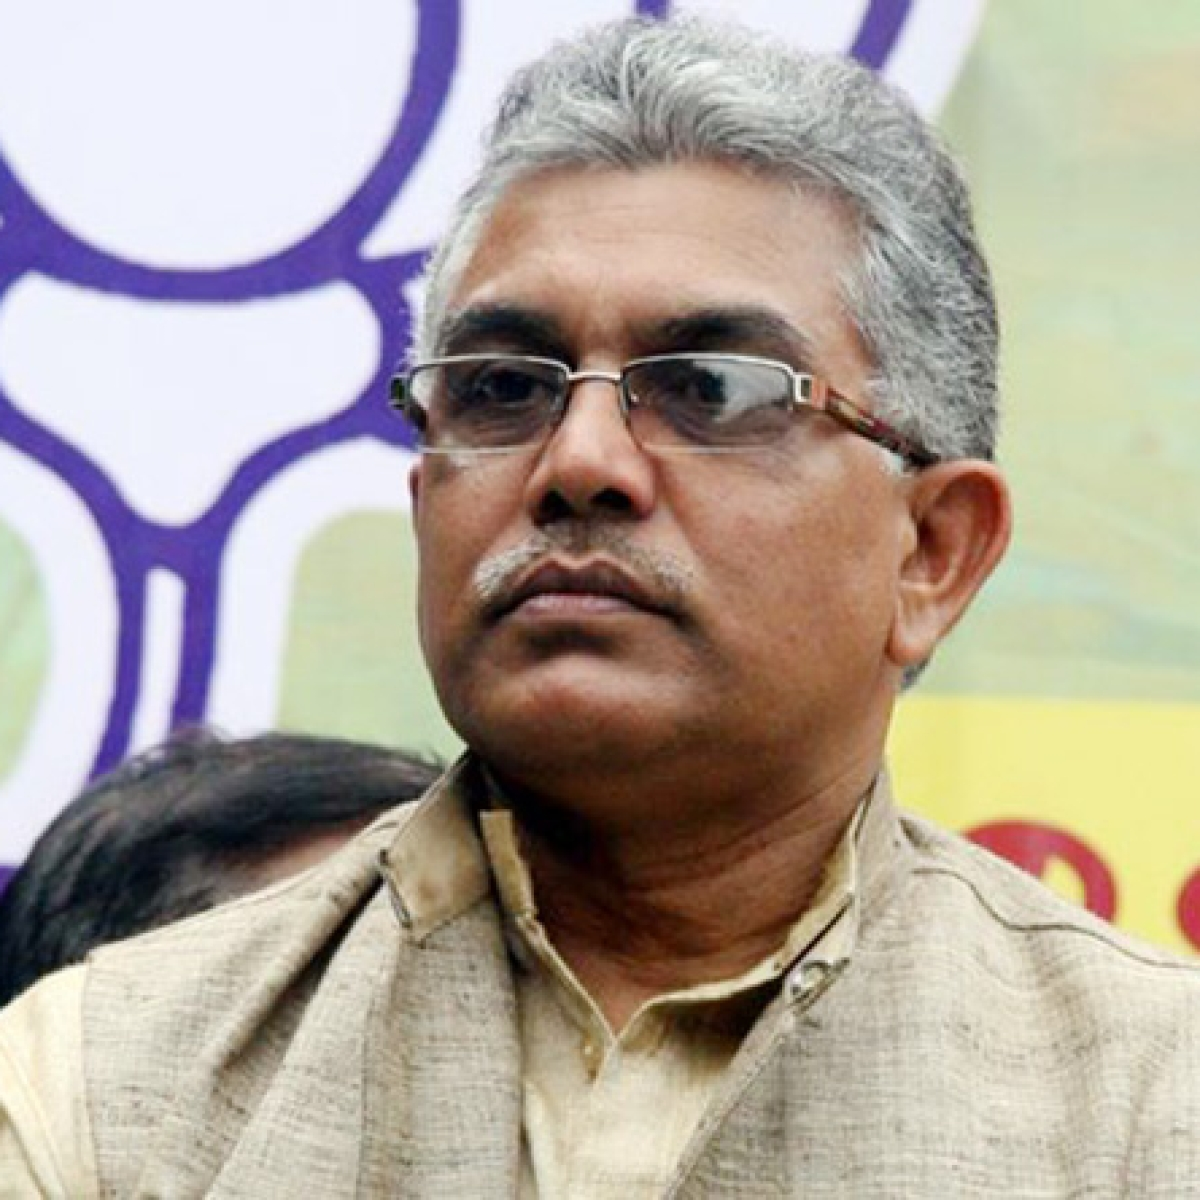 We are not scared, have god's blessings: BJP's Dilip Ghosh downplays coronavirus threat